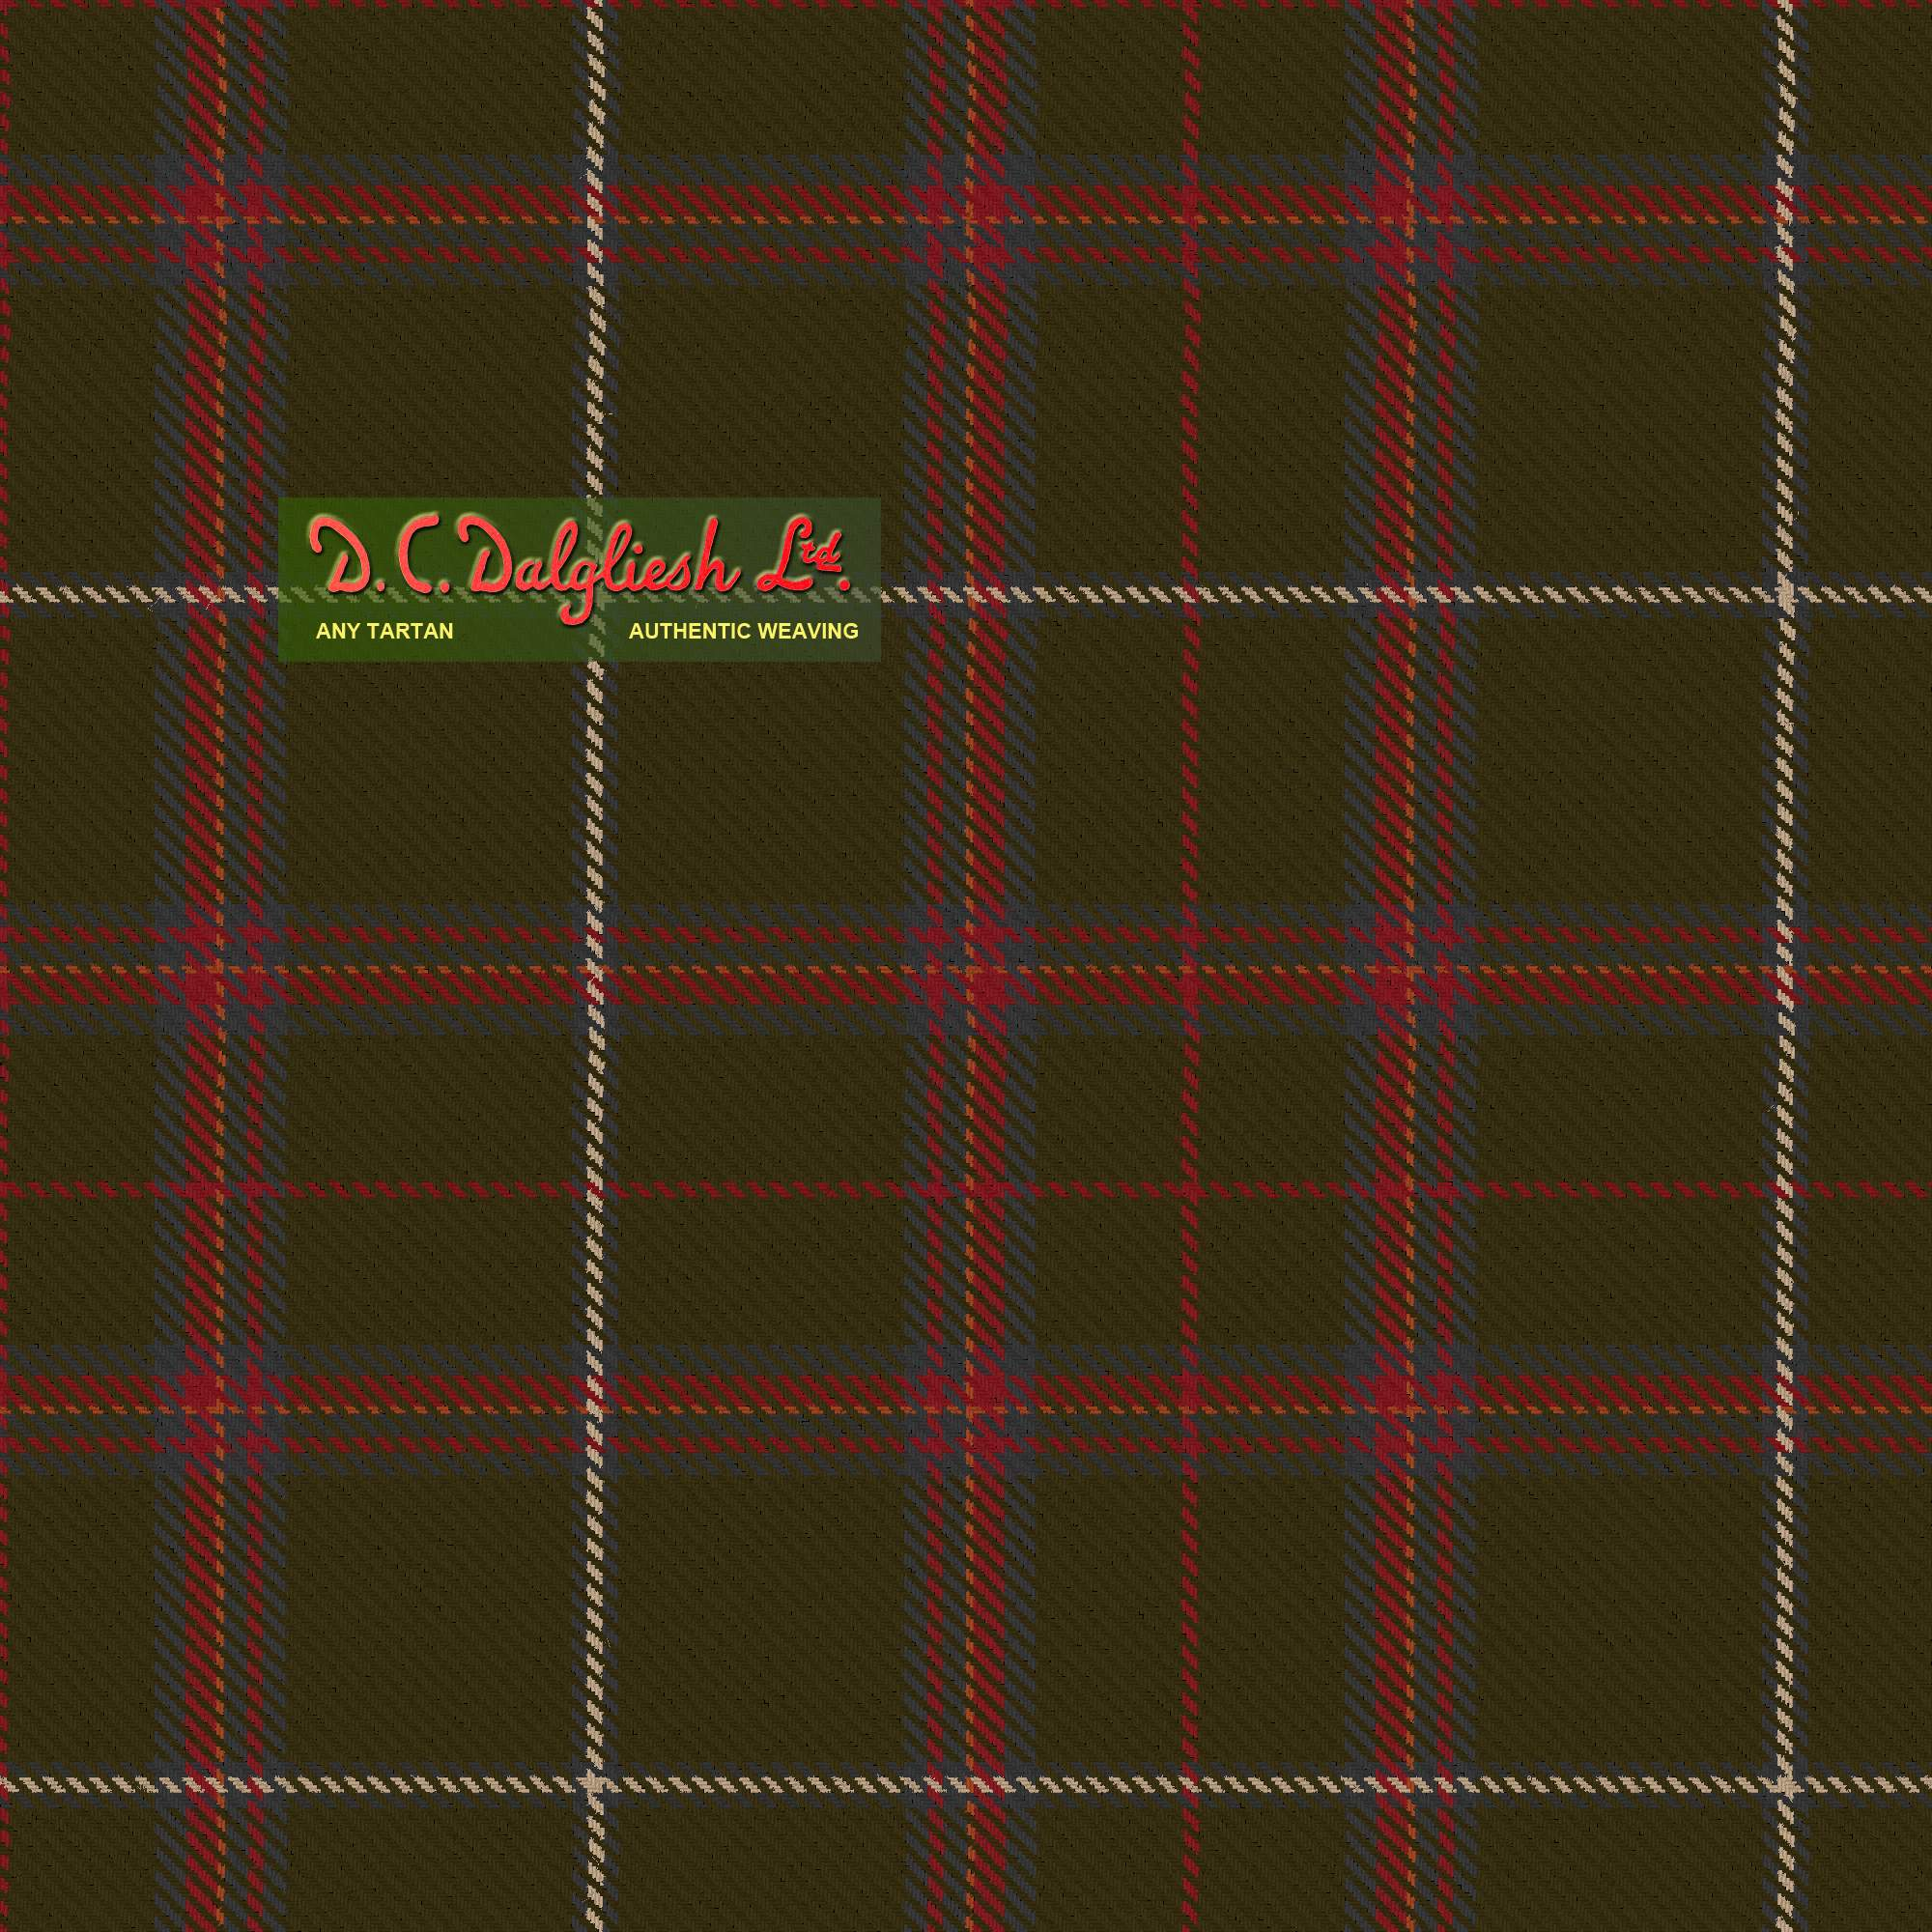 Brodie Graeme (Reproduction Colours)